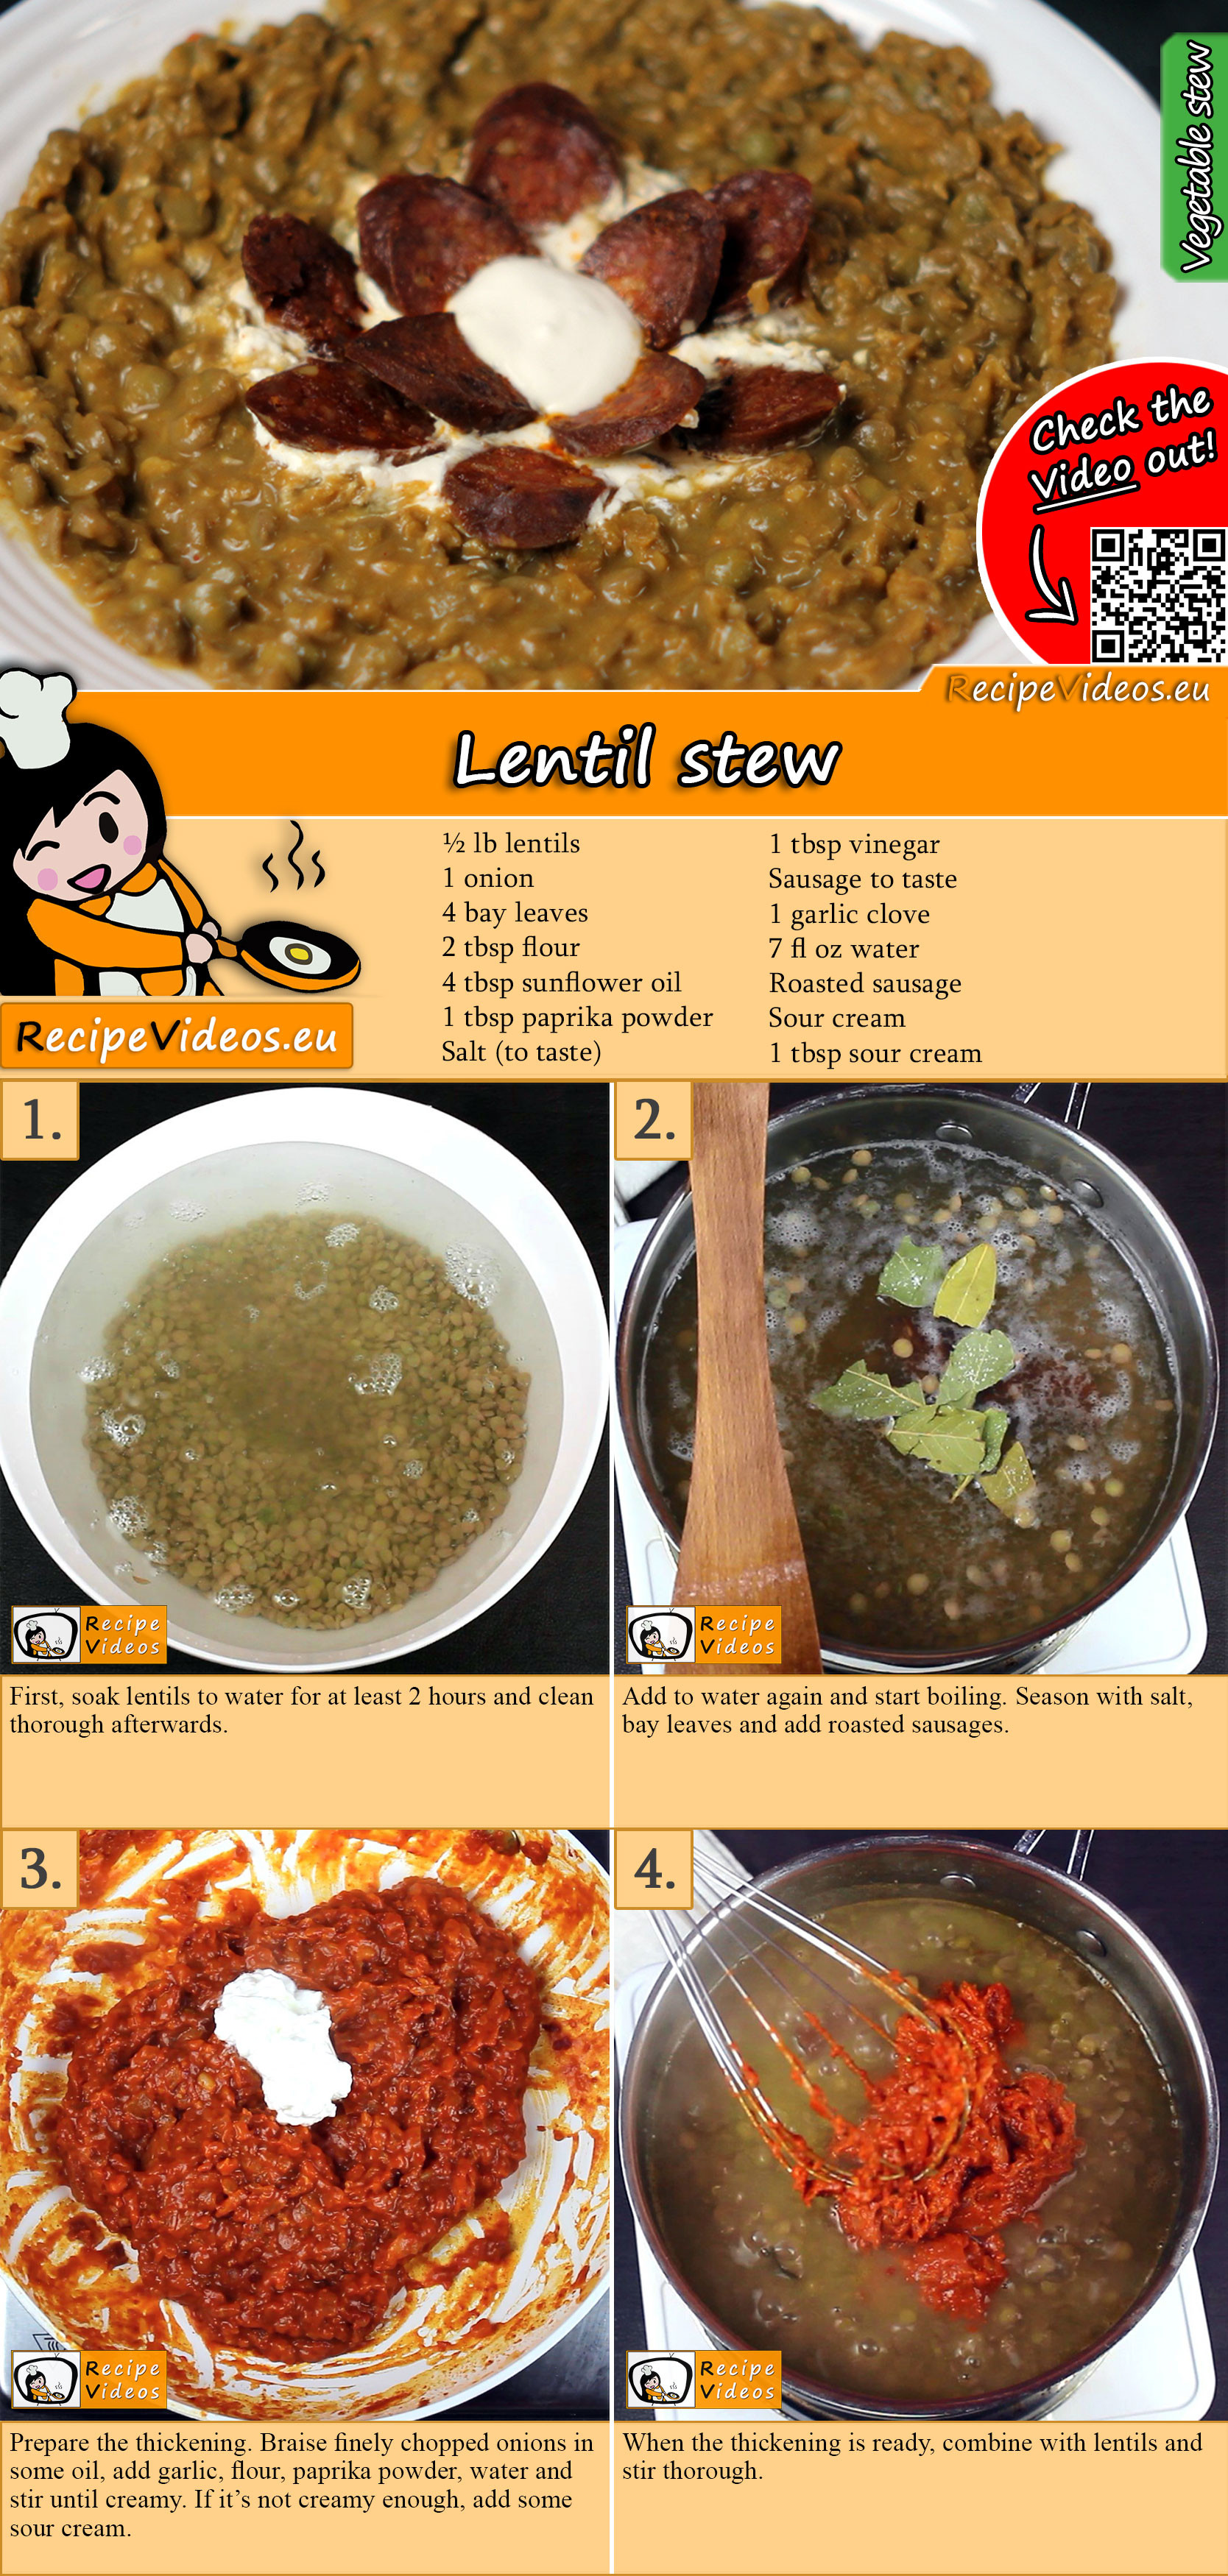 Lentil stew recipe with video